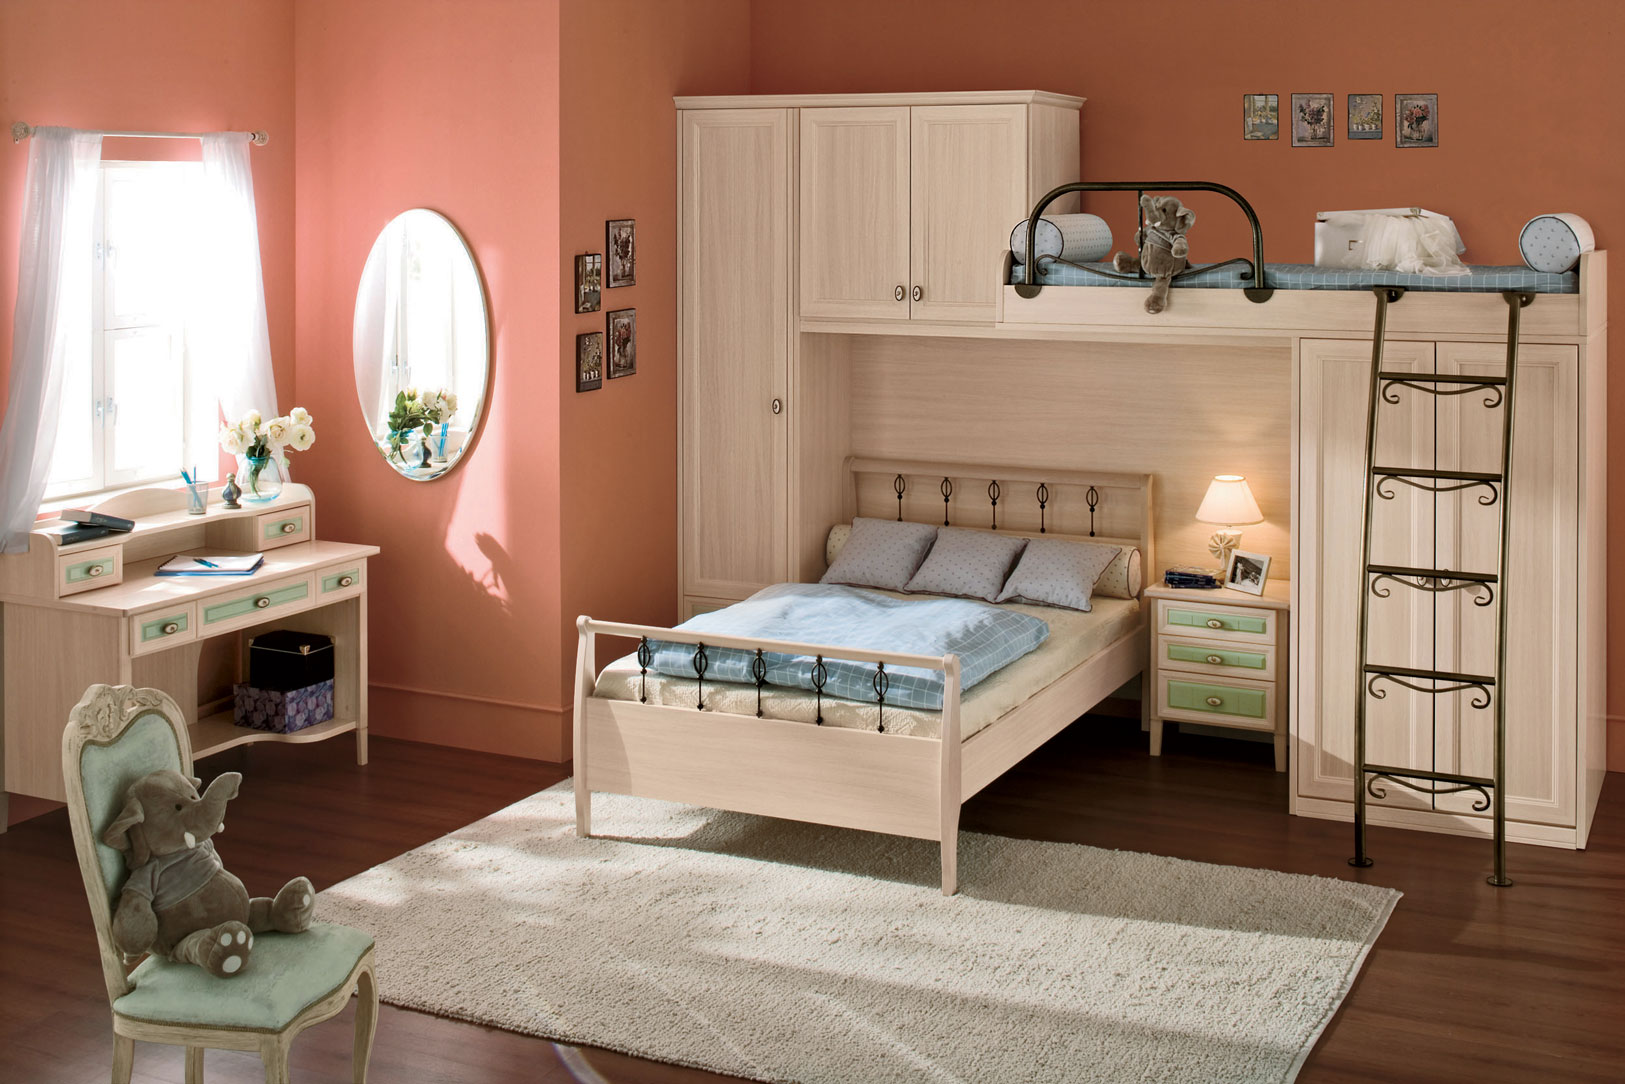 Modern Bedroom Kids: Kid's Rooms From Russian Maker:Akossta